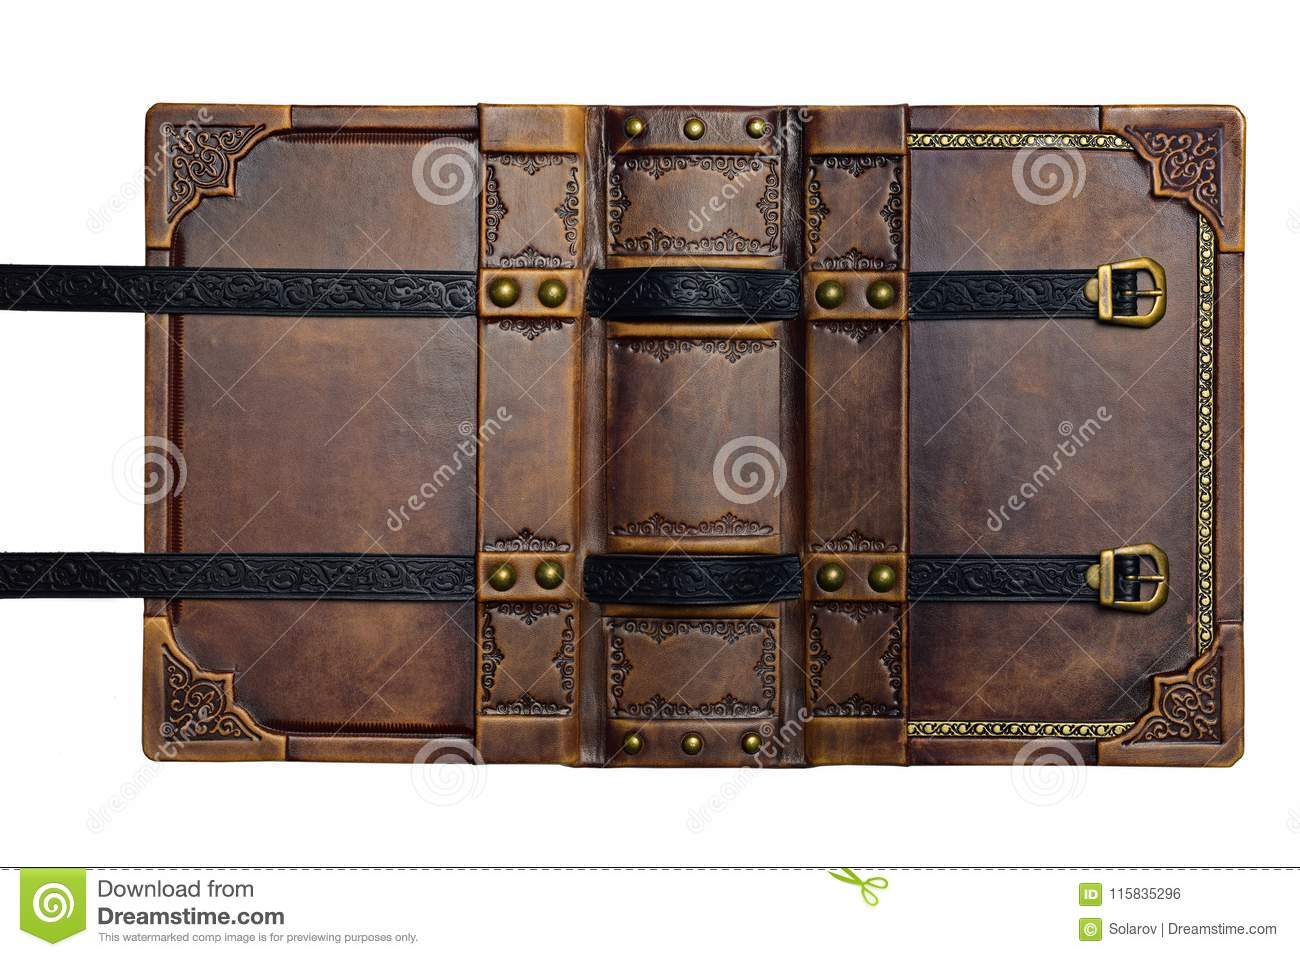 Opened aged brown leather cover with gilded frame and embossed leather stripes